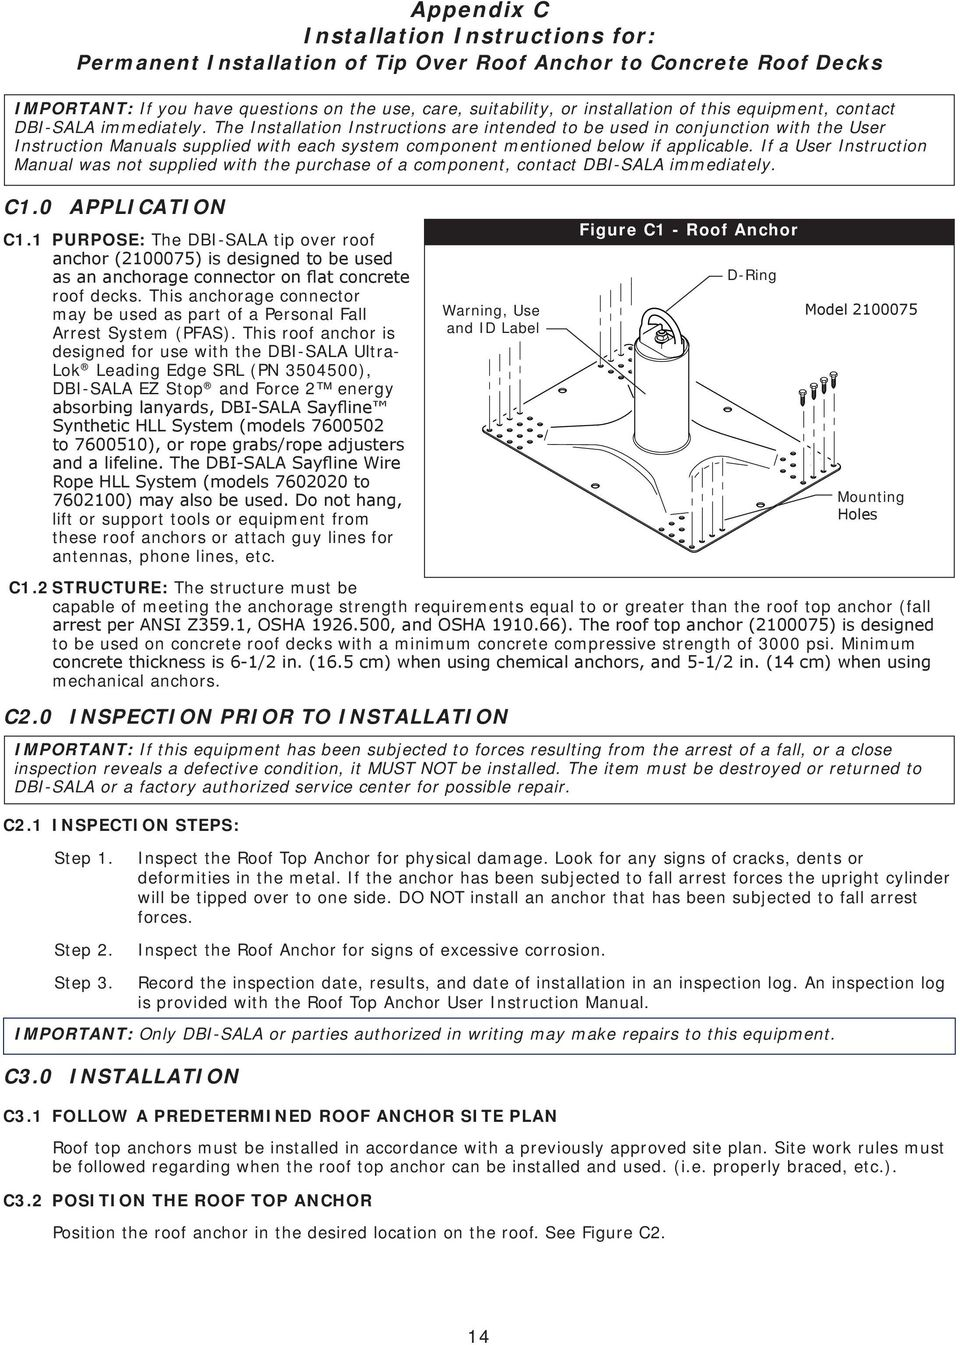 The Installation Instructions are intended to be used in conjunction with the User Instruction Manuals supplied with each system component mentioned below if applicable.